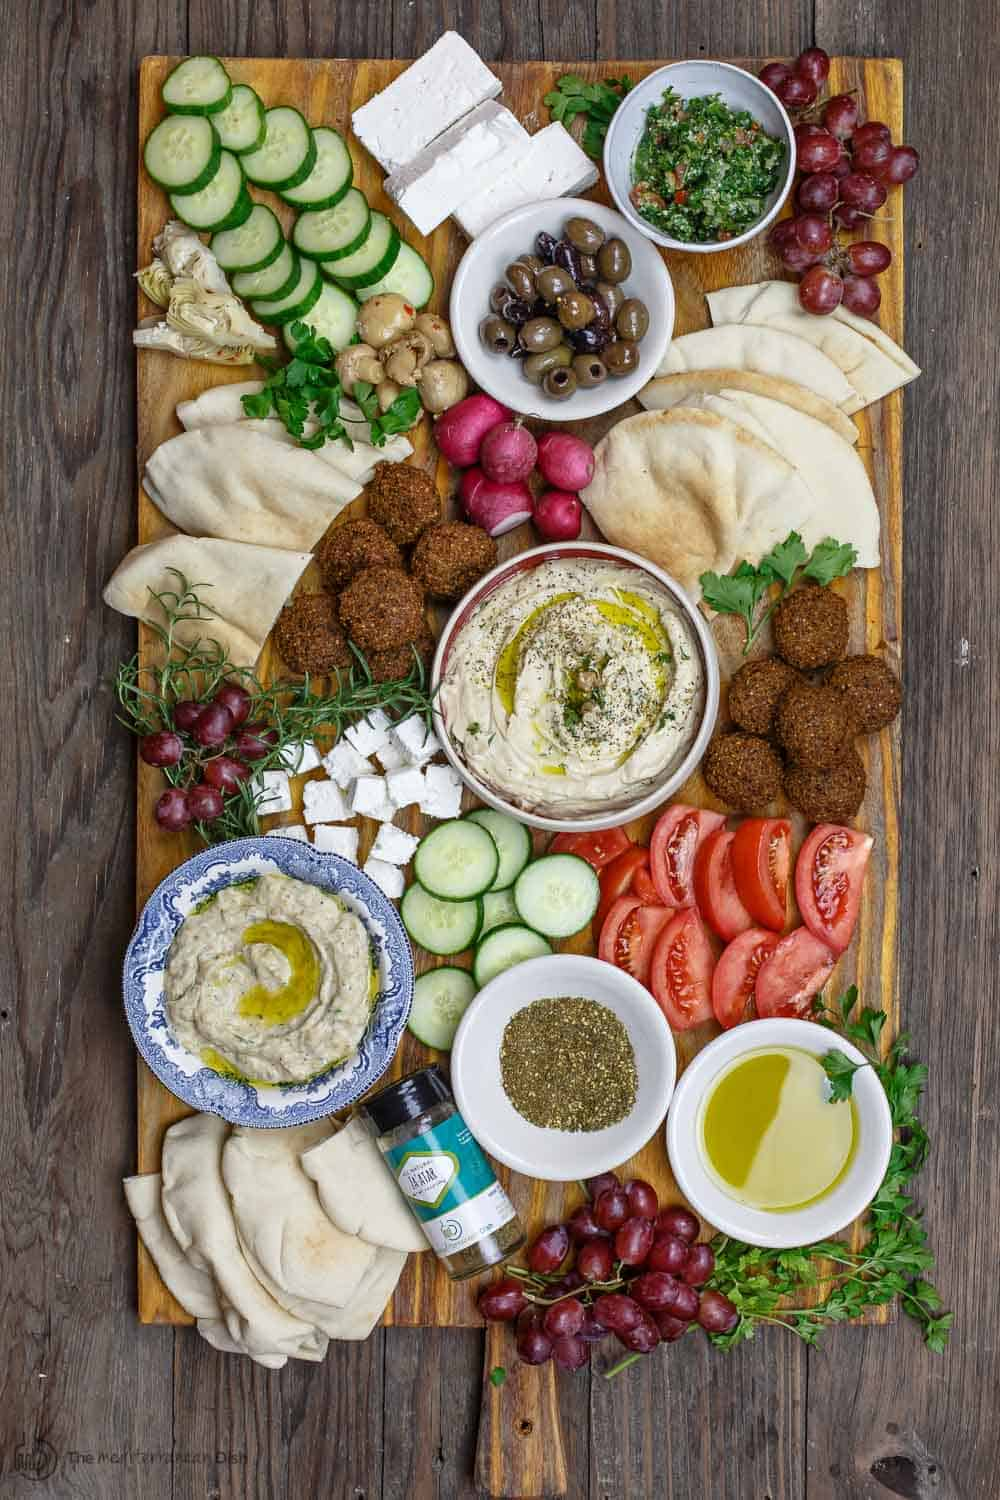 Mediterranean breakfast board with falfel, hummus, baba ganoush, fresh sliced vegetables and olives